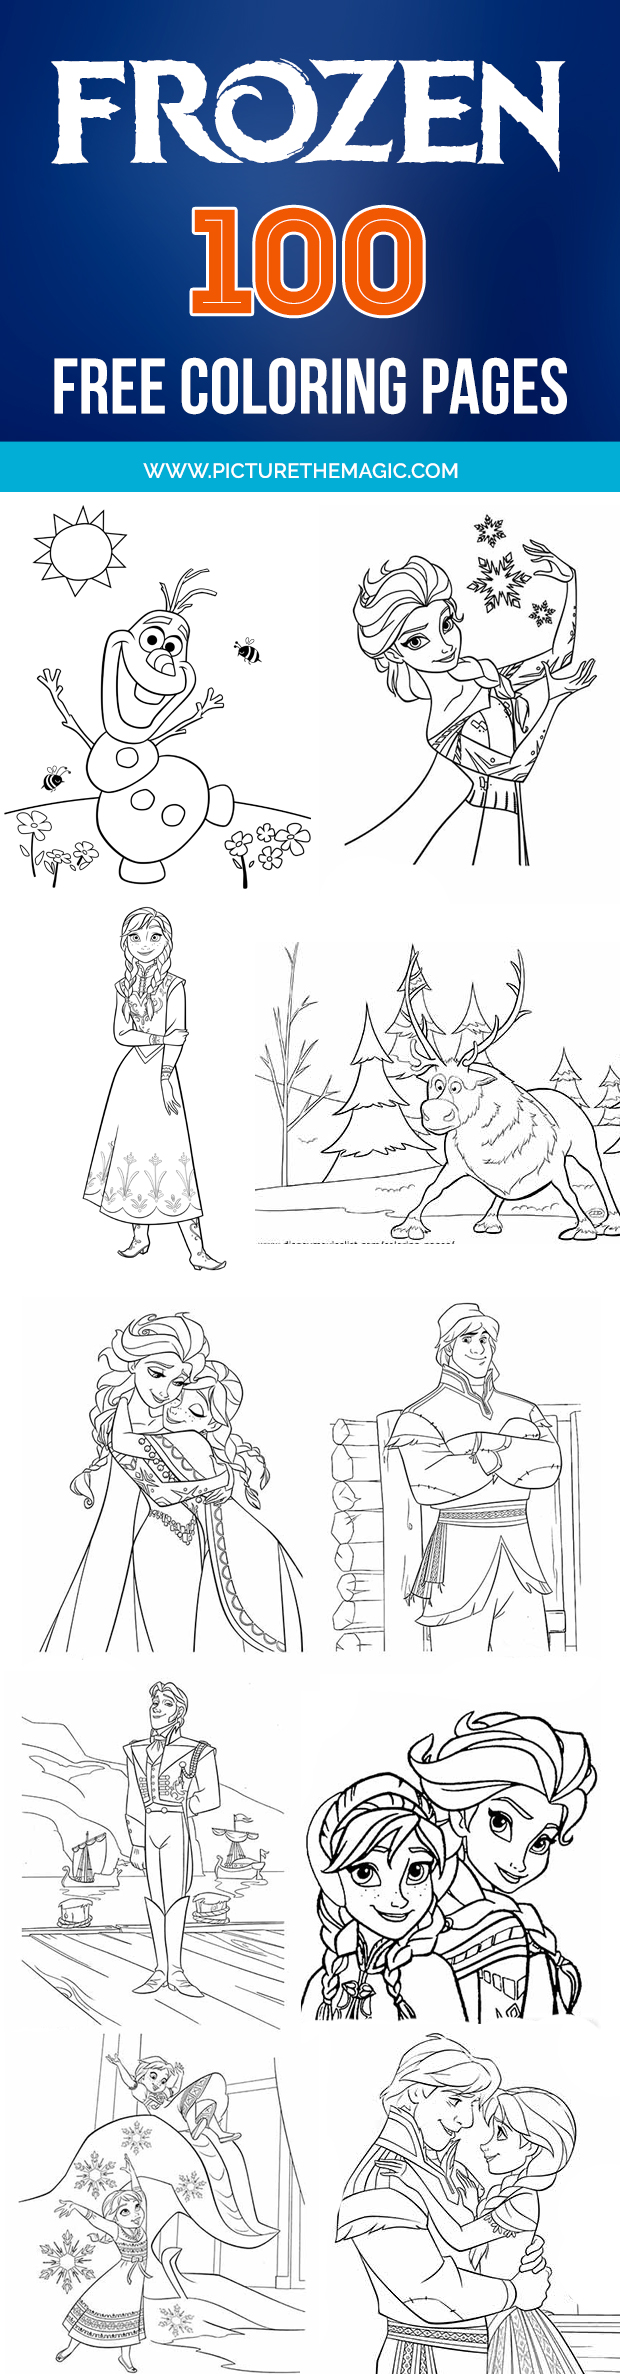 101 Frozen Coloring Pages (February 2018 Edition) - Elsa coloring ...